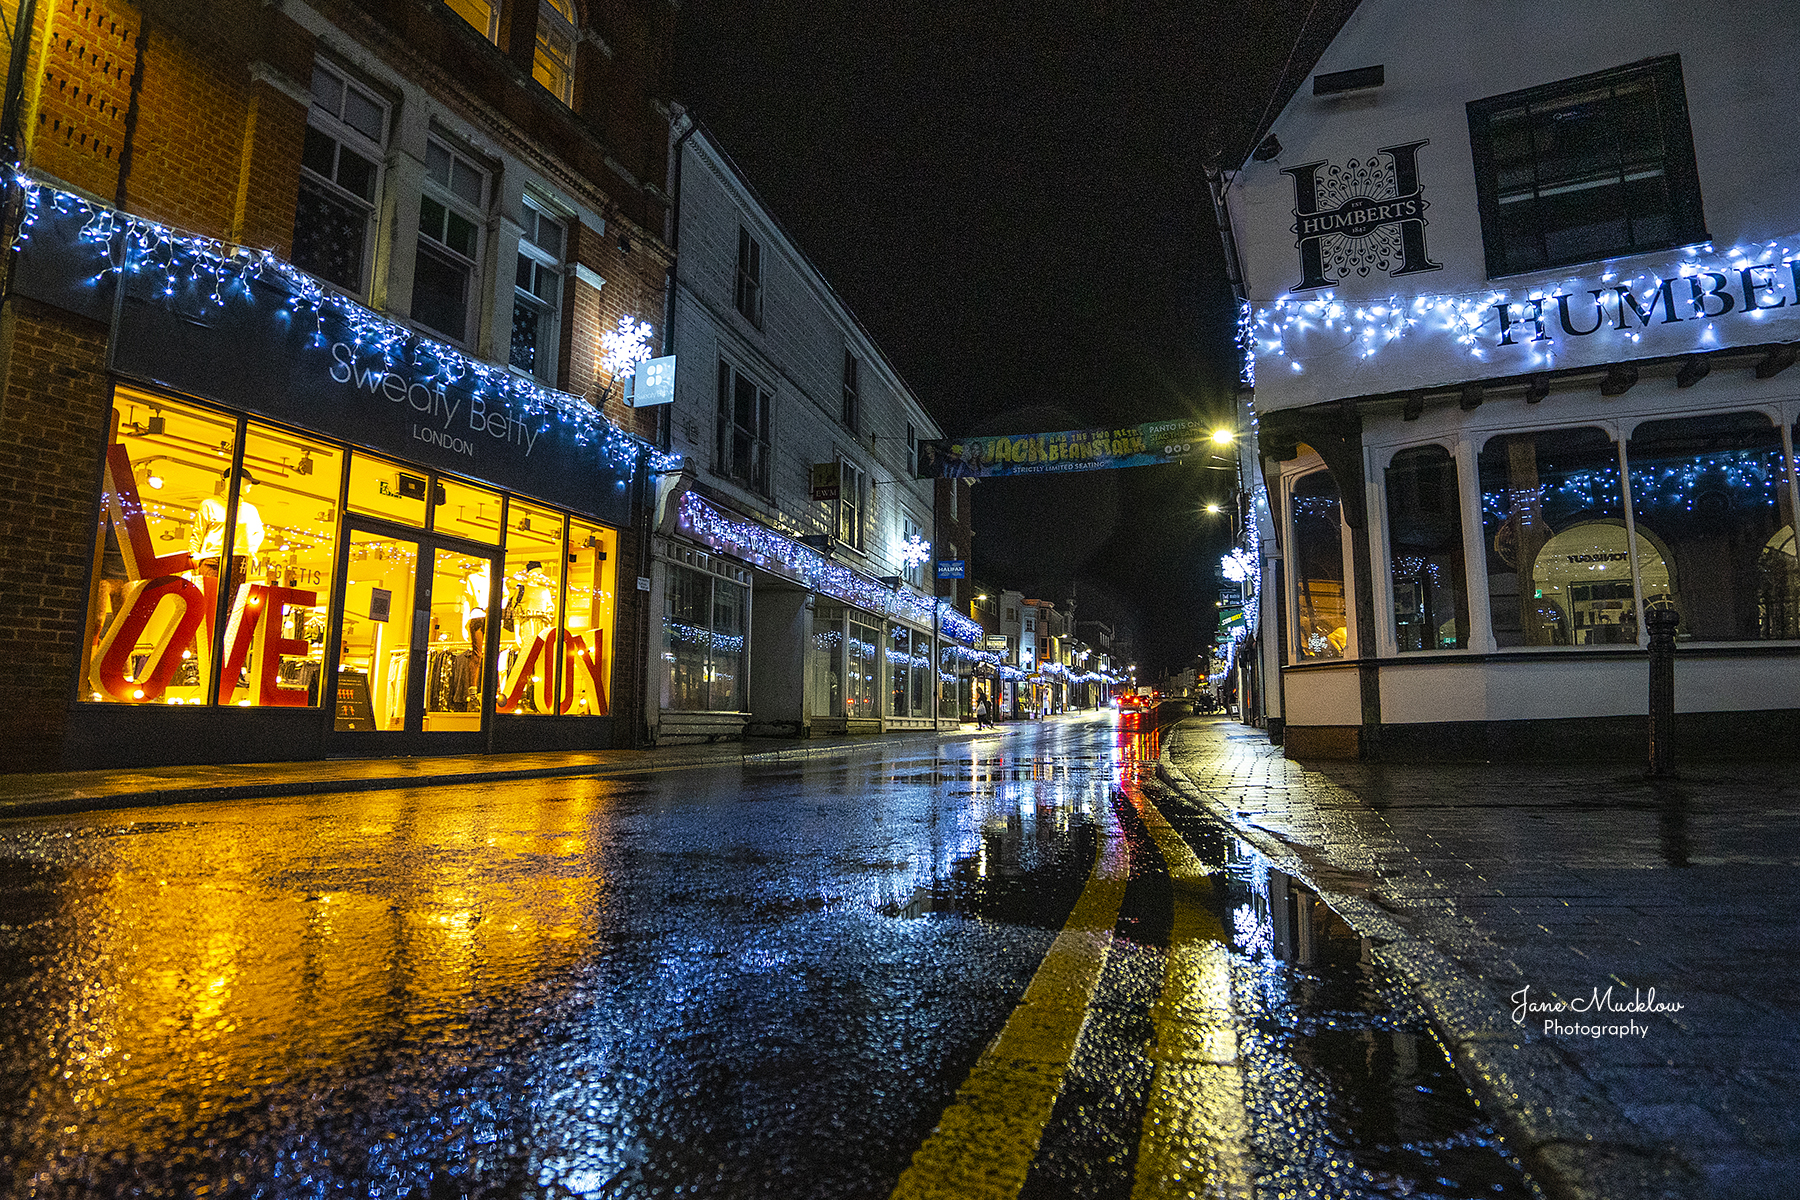 Photo of the Christmas lights on a wet evening in Sevenoaks high street, by Jane Mucklow